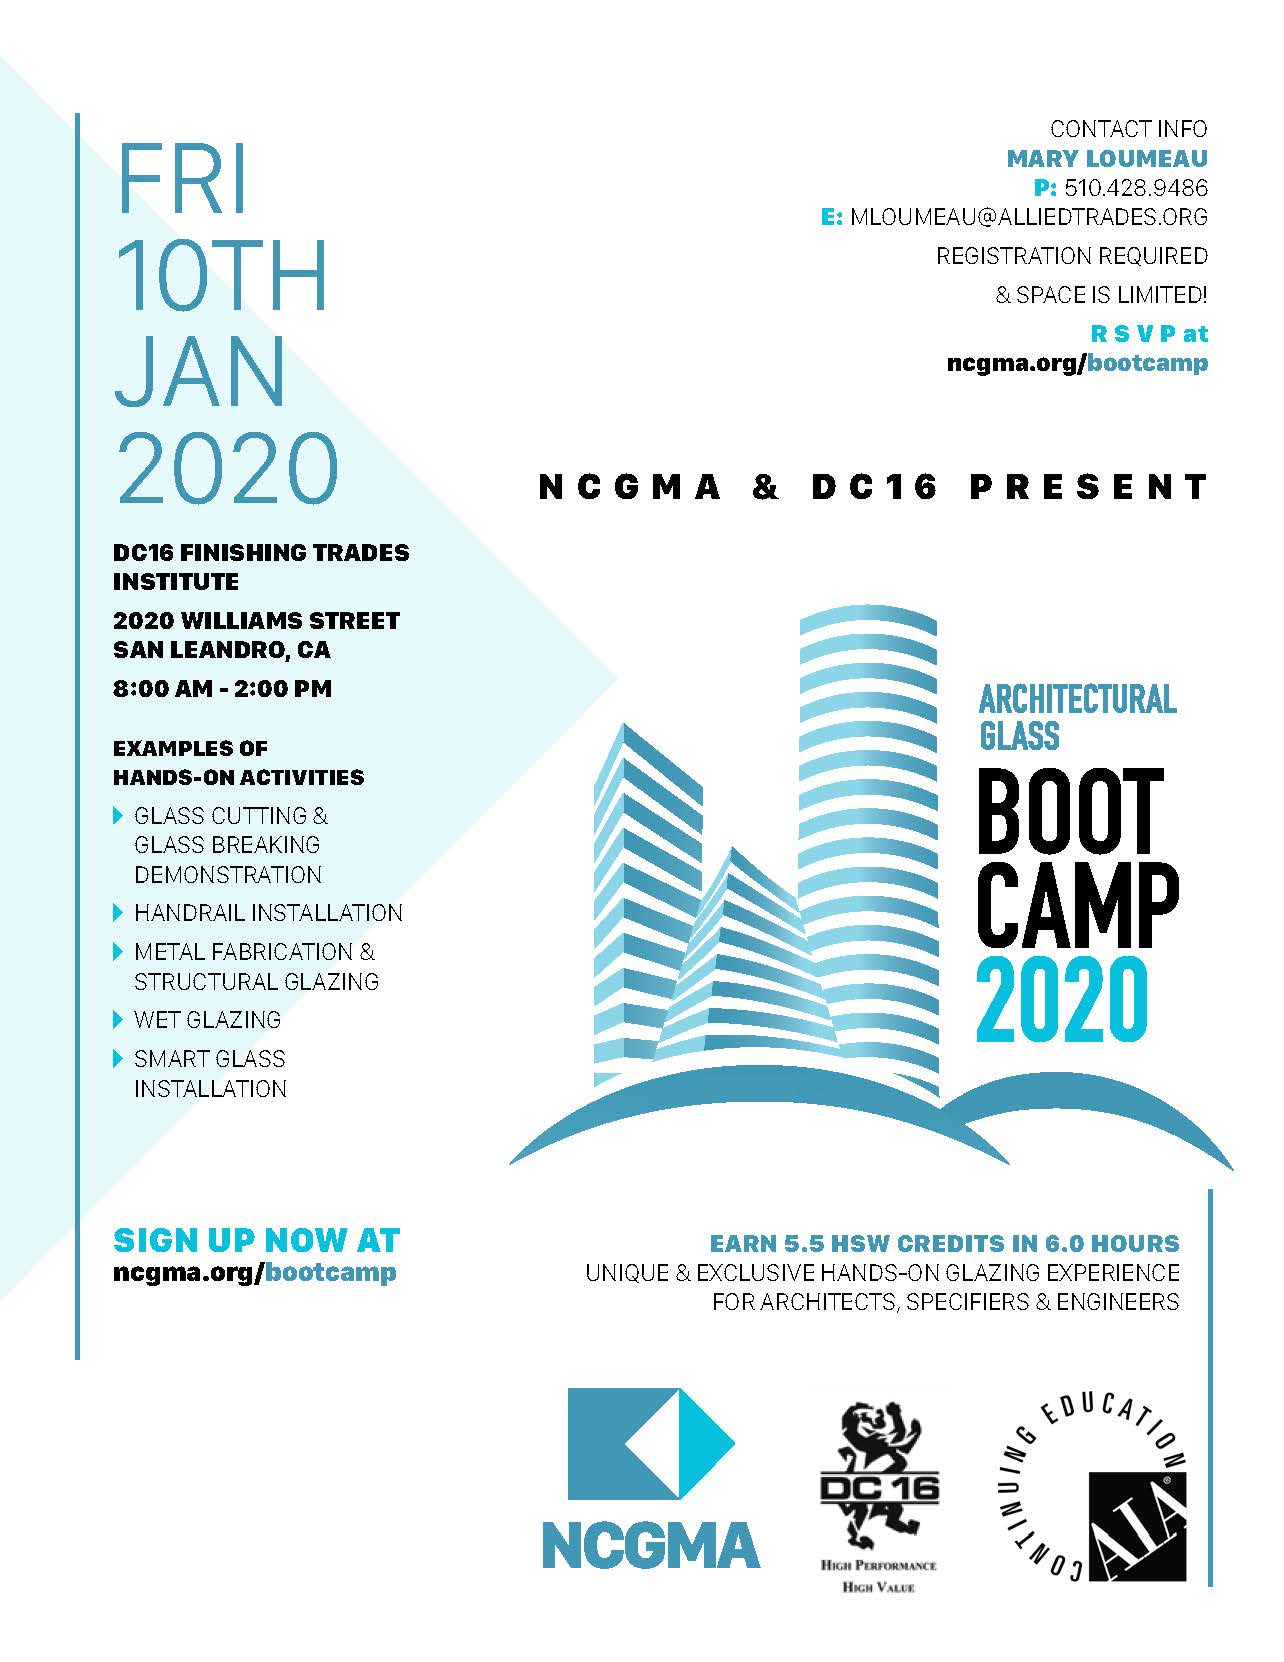 NCGMA Architectural Glass Boot Camp